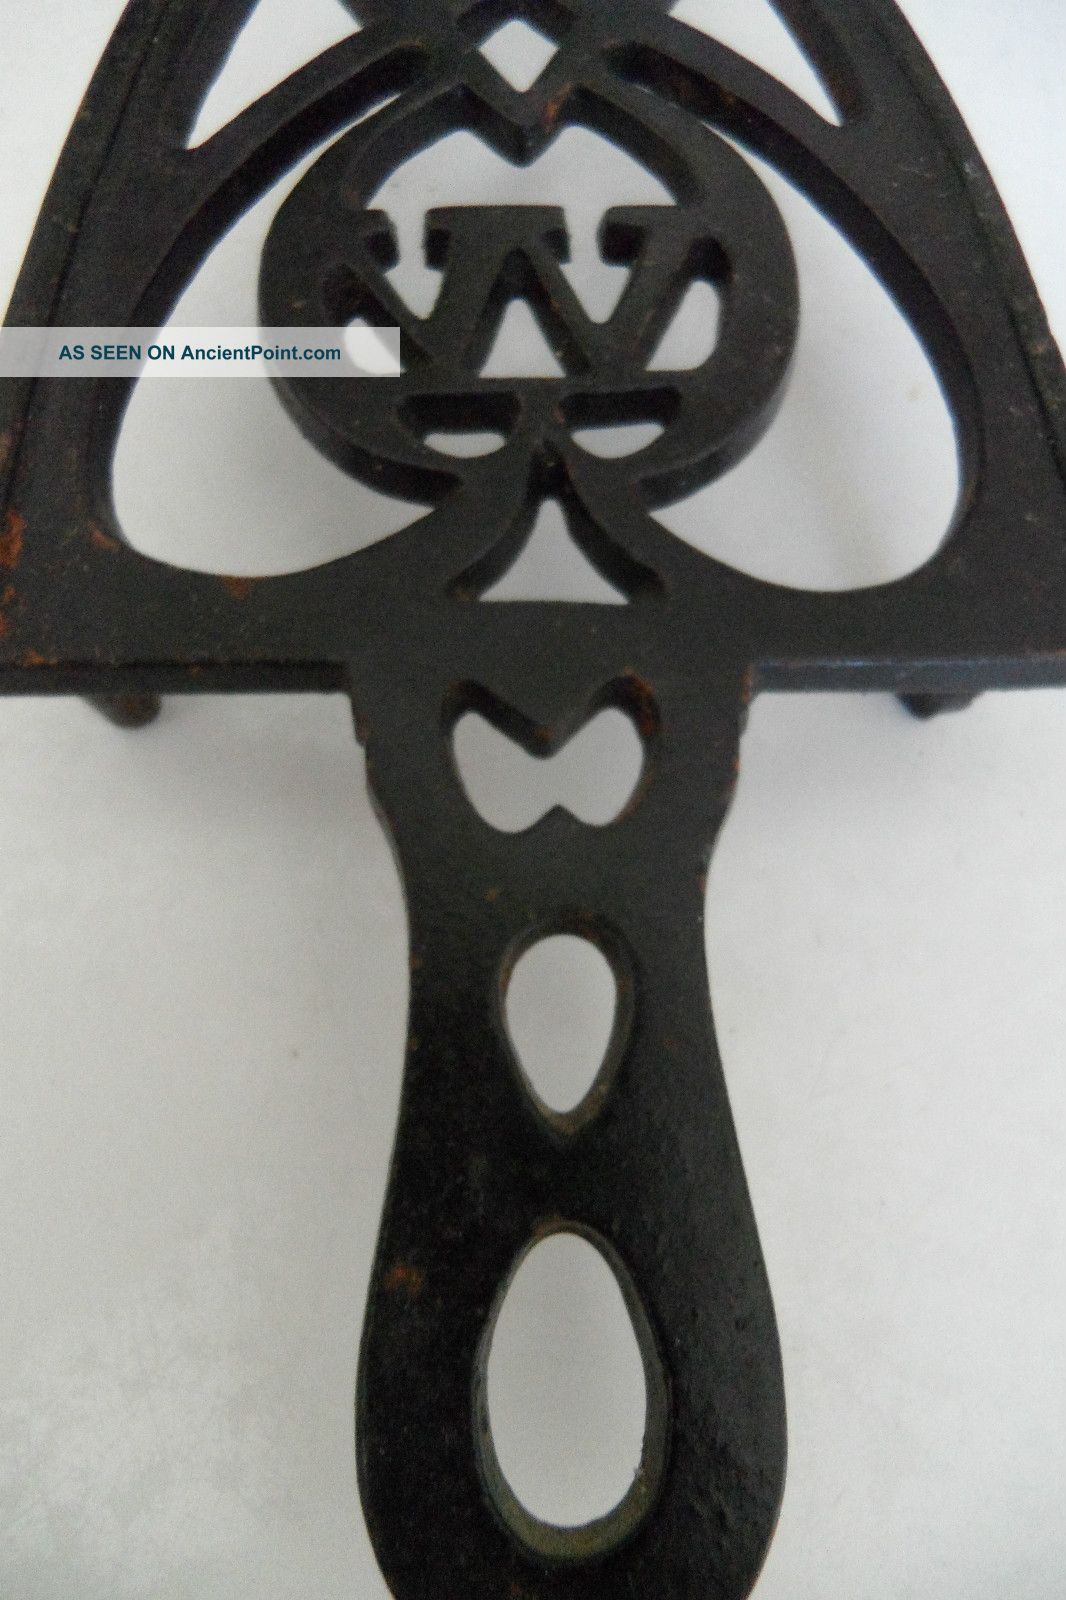 Cast Iron Trivet With W And Heart Trivets photo